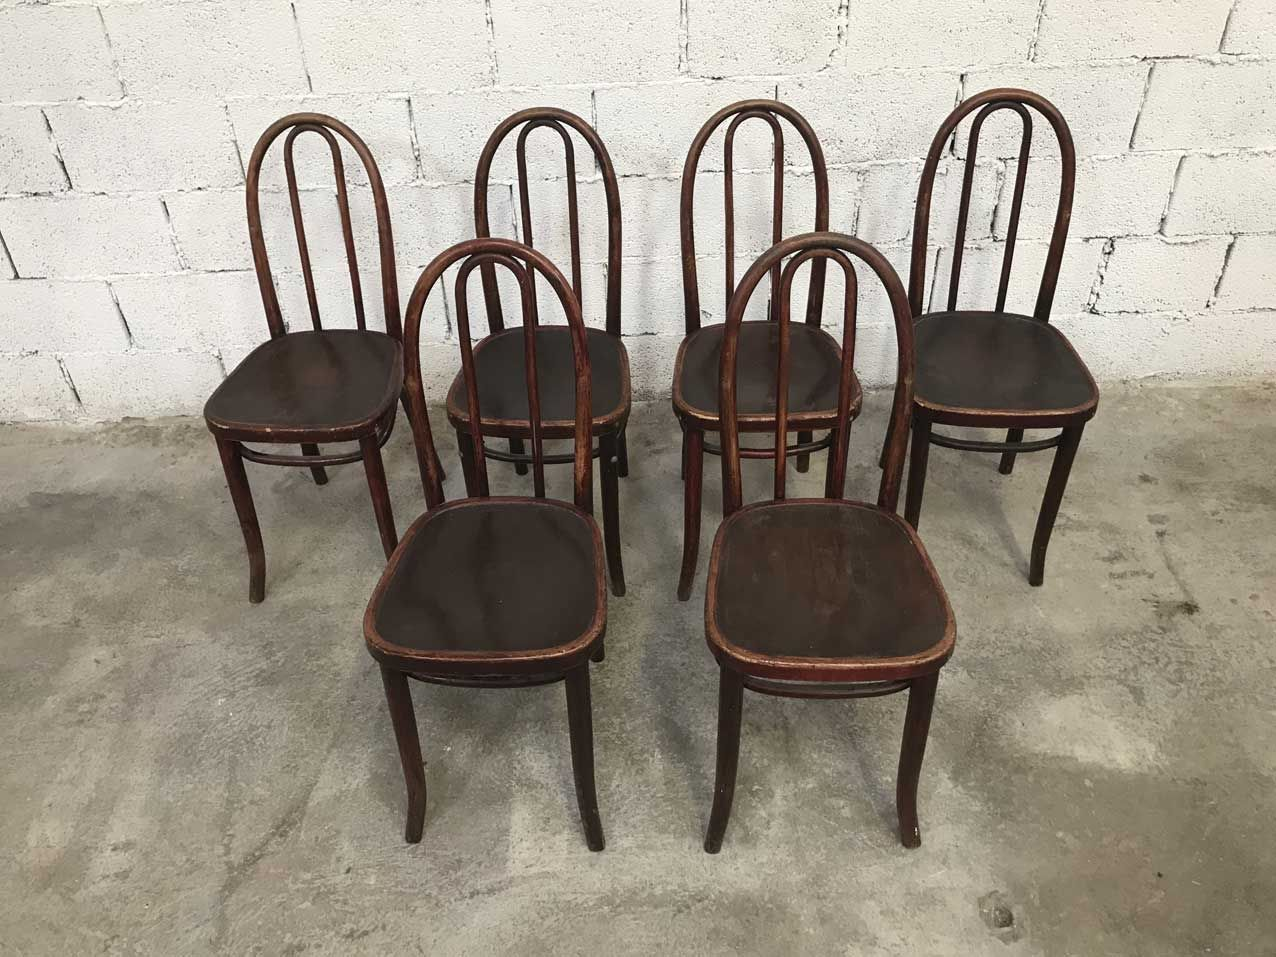 vintage bistro st hle von thonet 6er set bei pamono kaufen. Black Bedroom Furniture Sets. Home Design Ideas